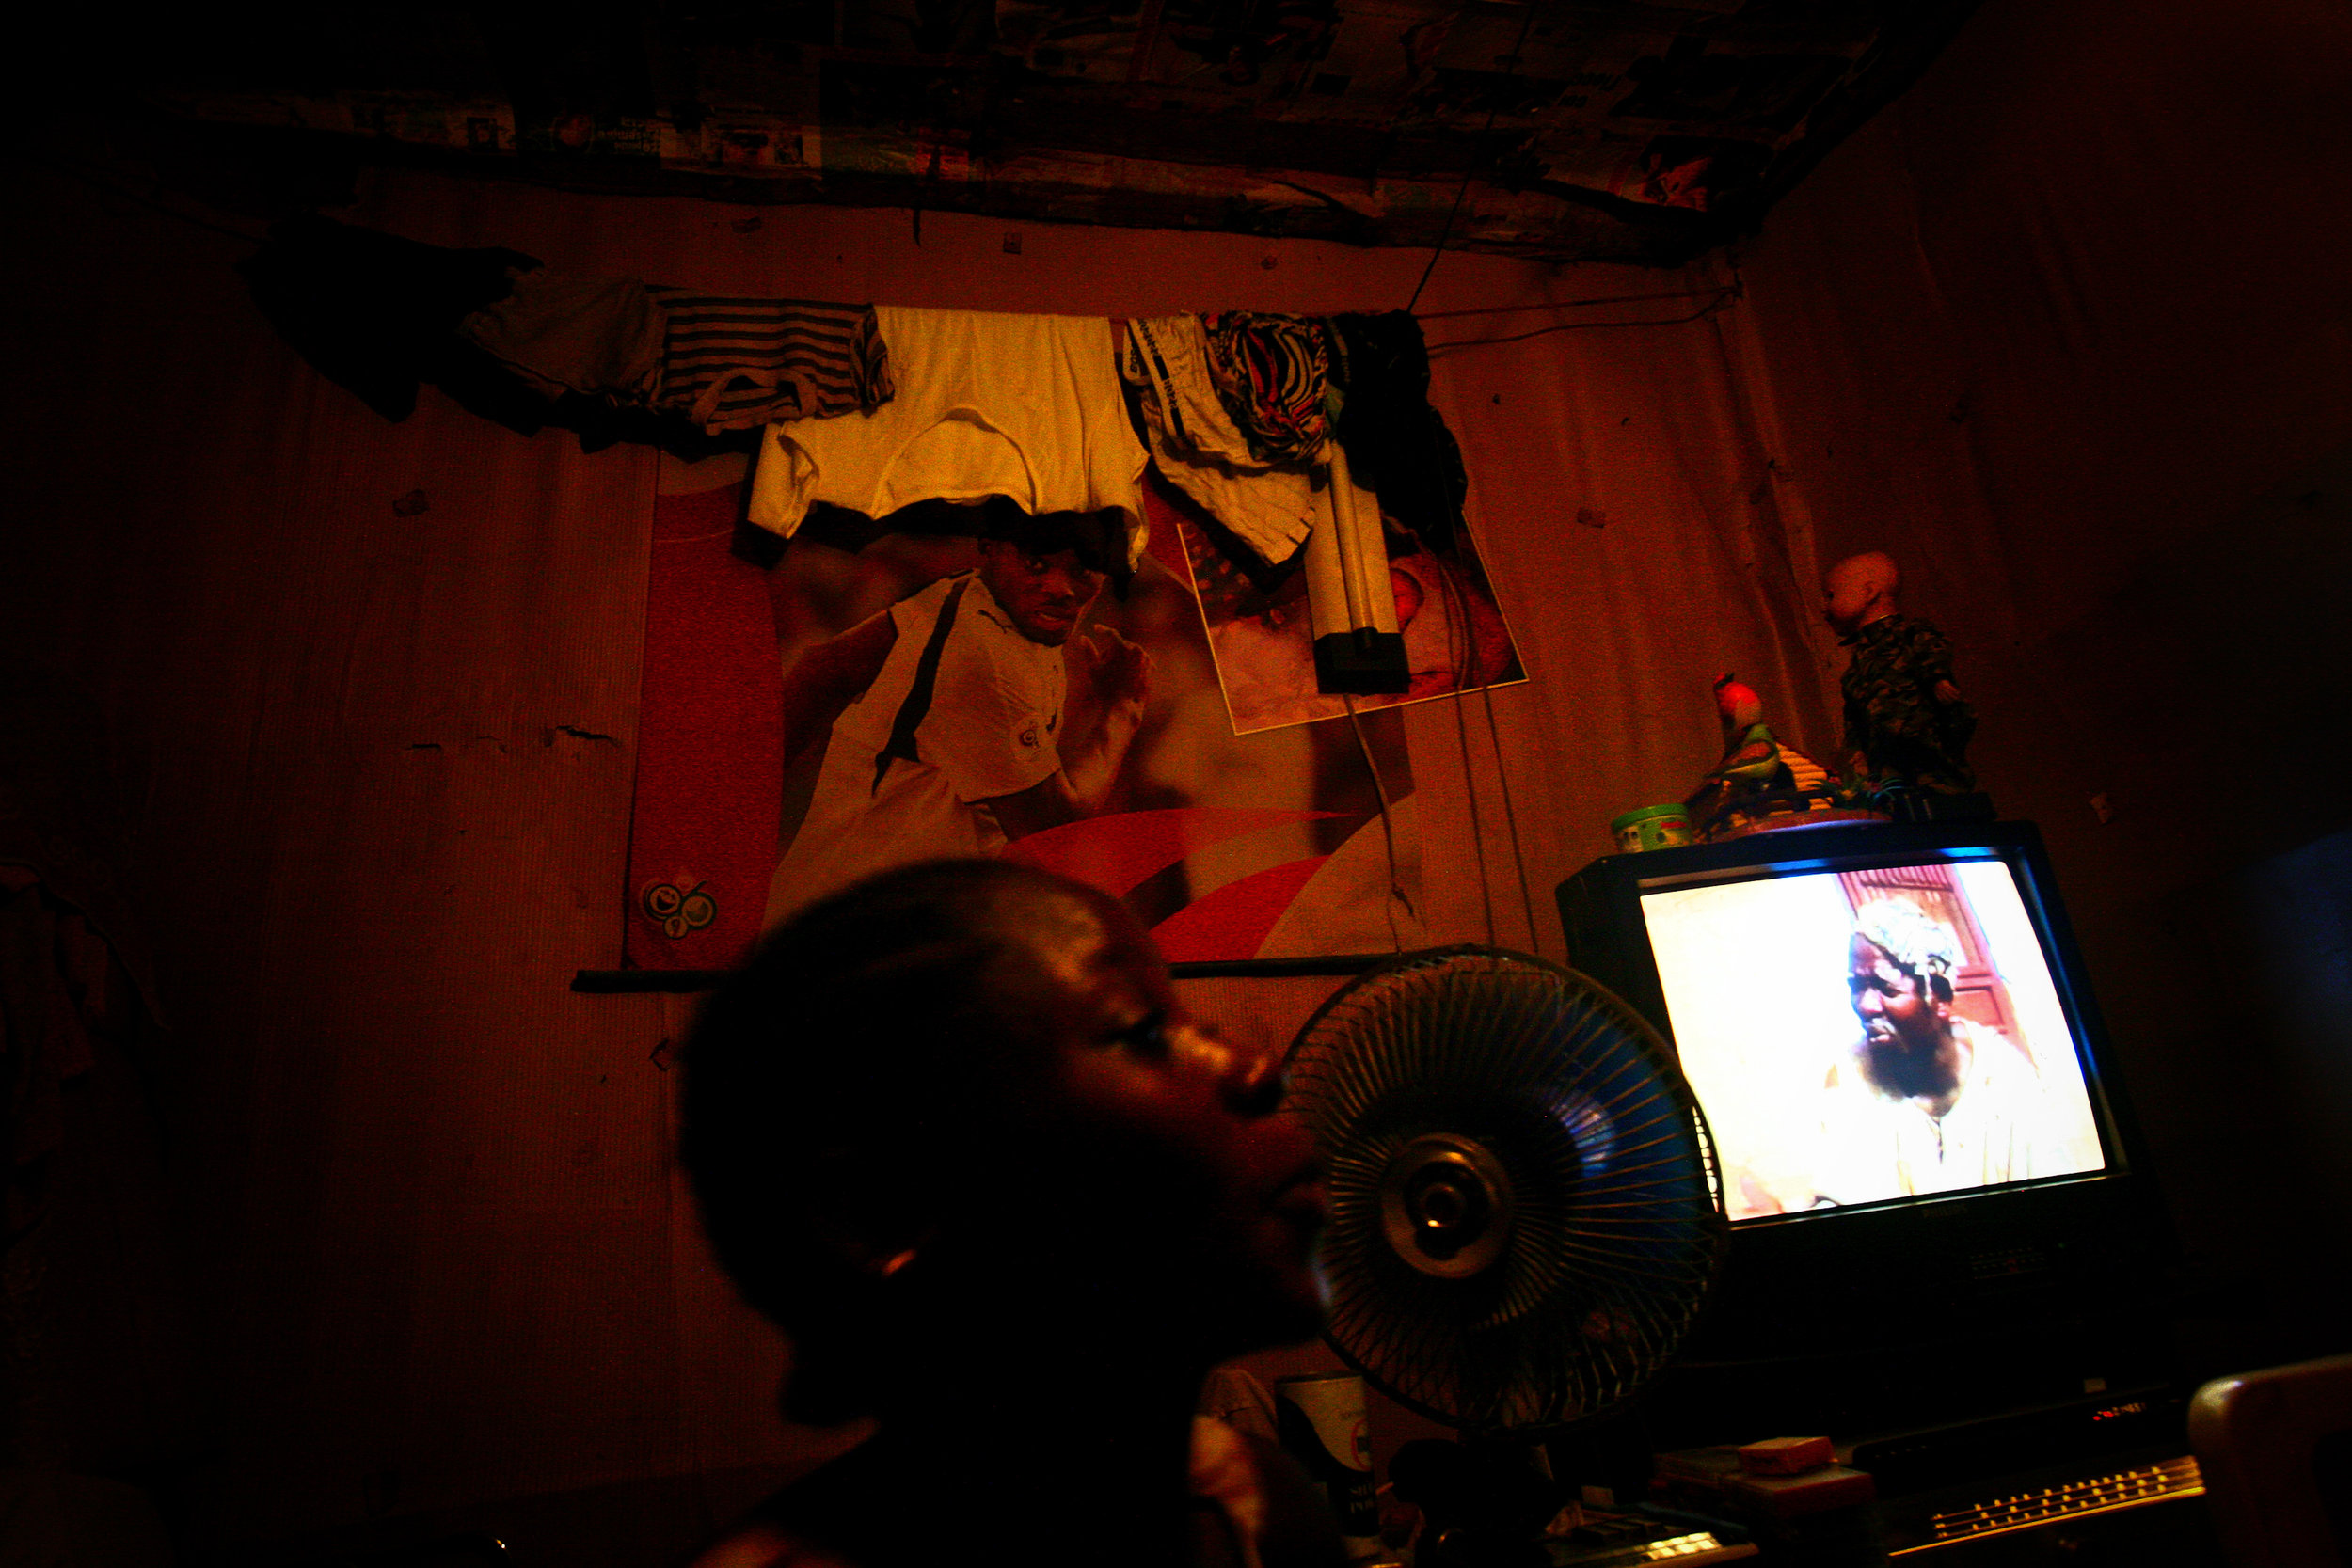 A young woman watches a film in her room in Accra, Greater Accra Region, Ghana on Oct. 5, 2008.